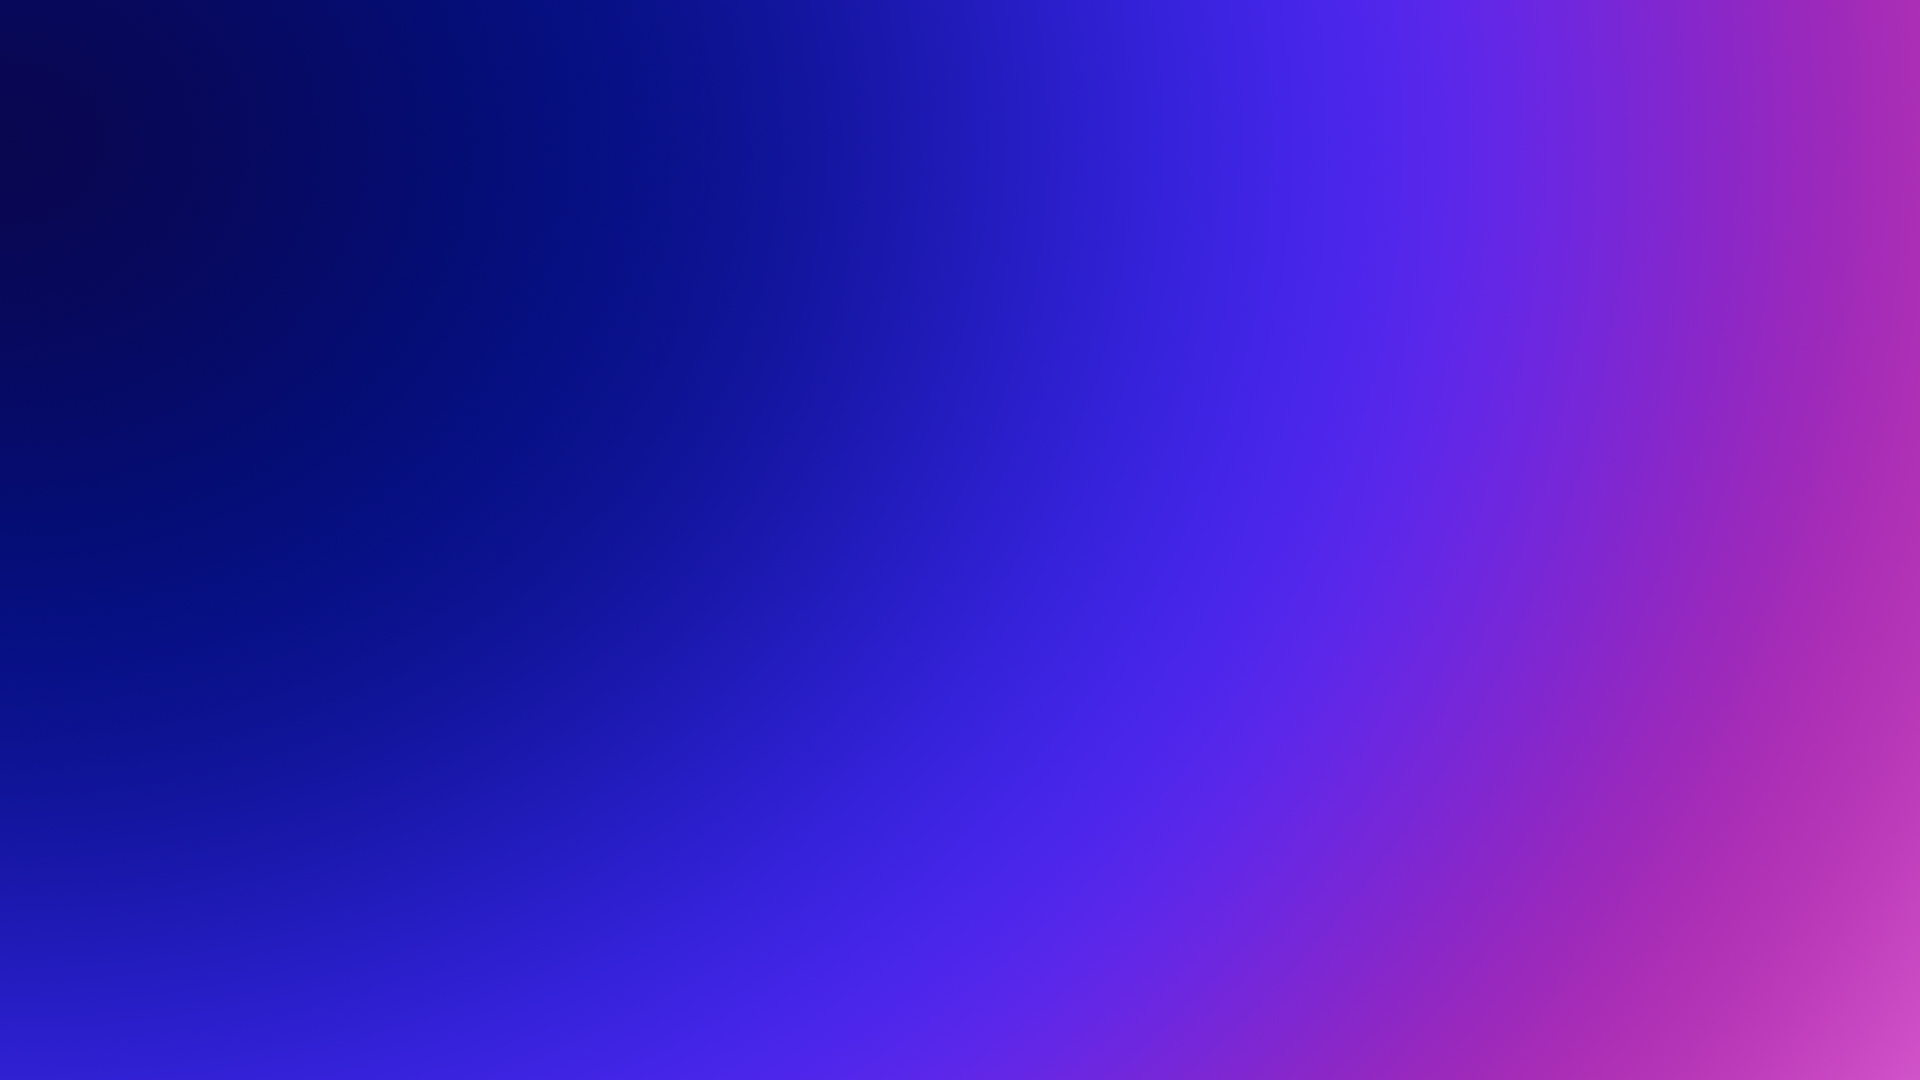 MISTIFI Phantom gradient background